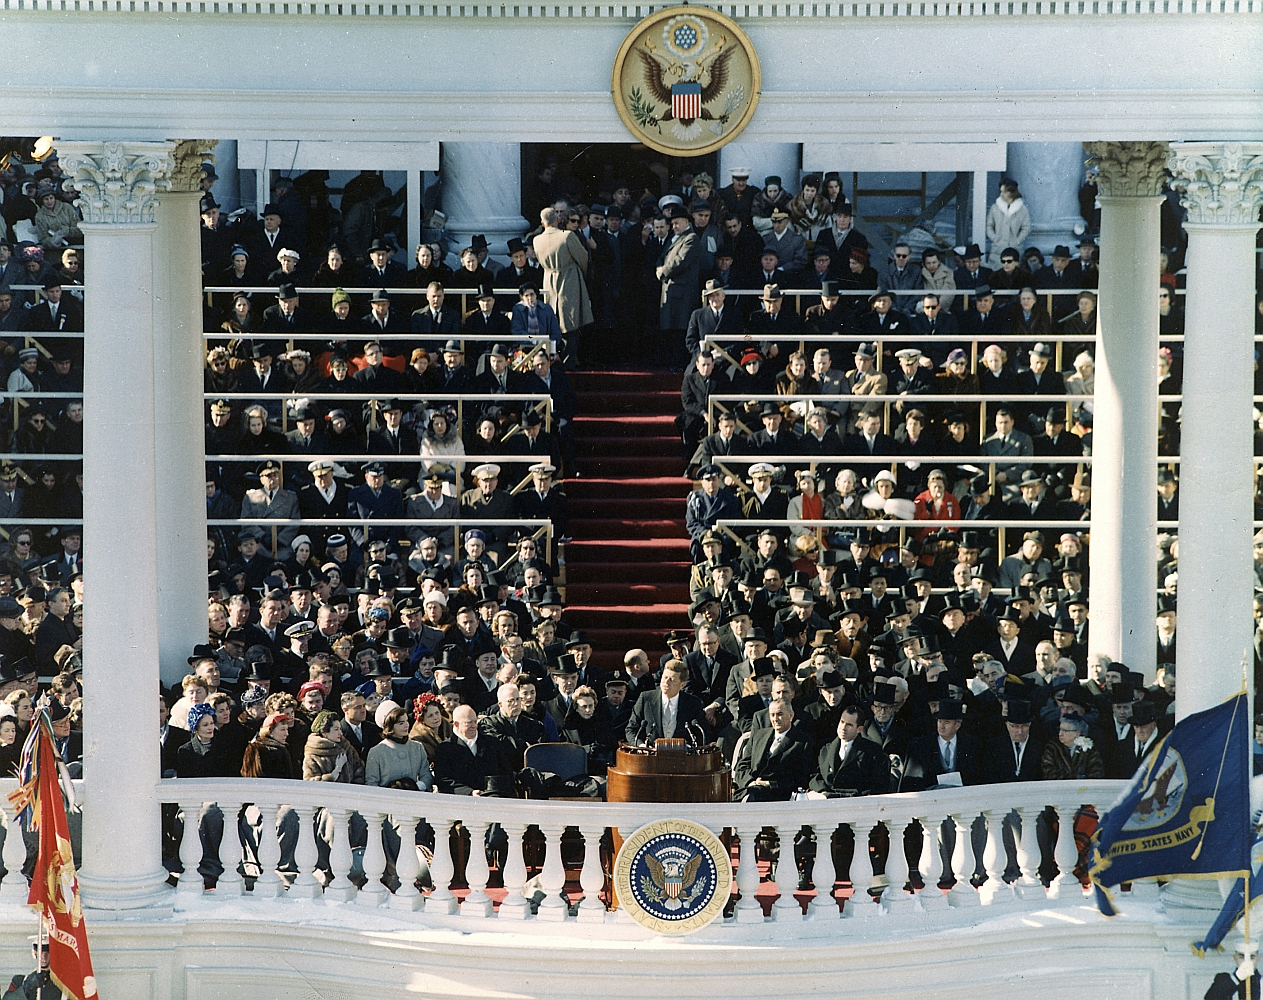 """Inaugural Address of John F. Kennedy, 35th President of the United States. Washington, DC 20 January 1961. Please credit """"U. S. Army Signal Corps photograph in the John Fitzgerald Kennedy Library, Boston""""."""